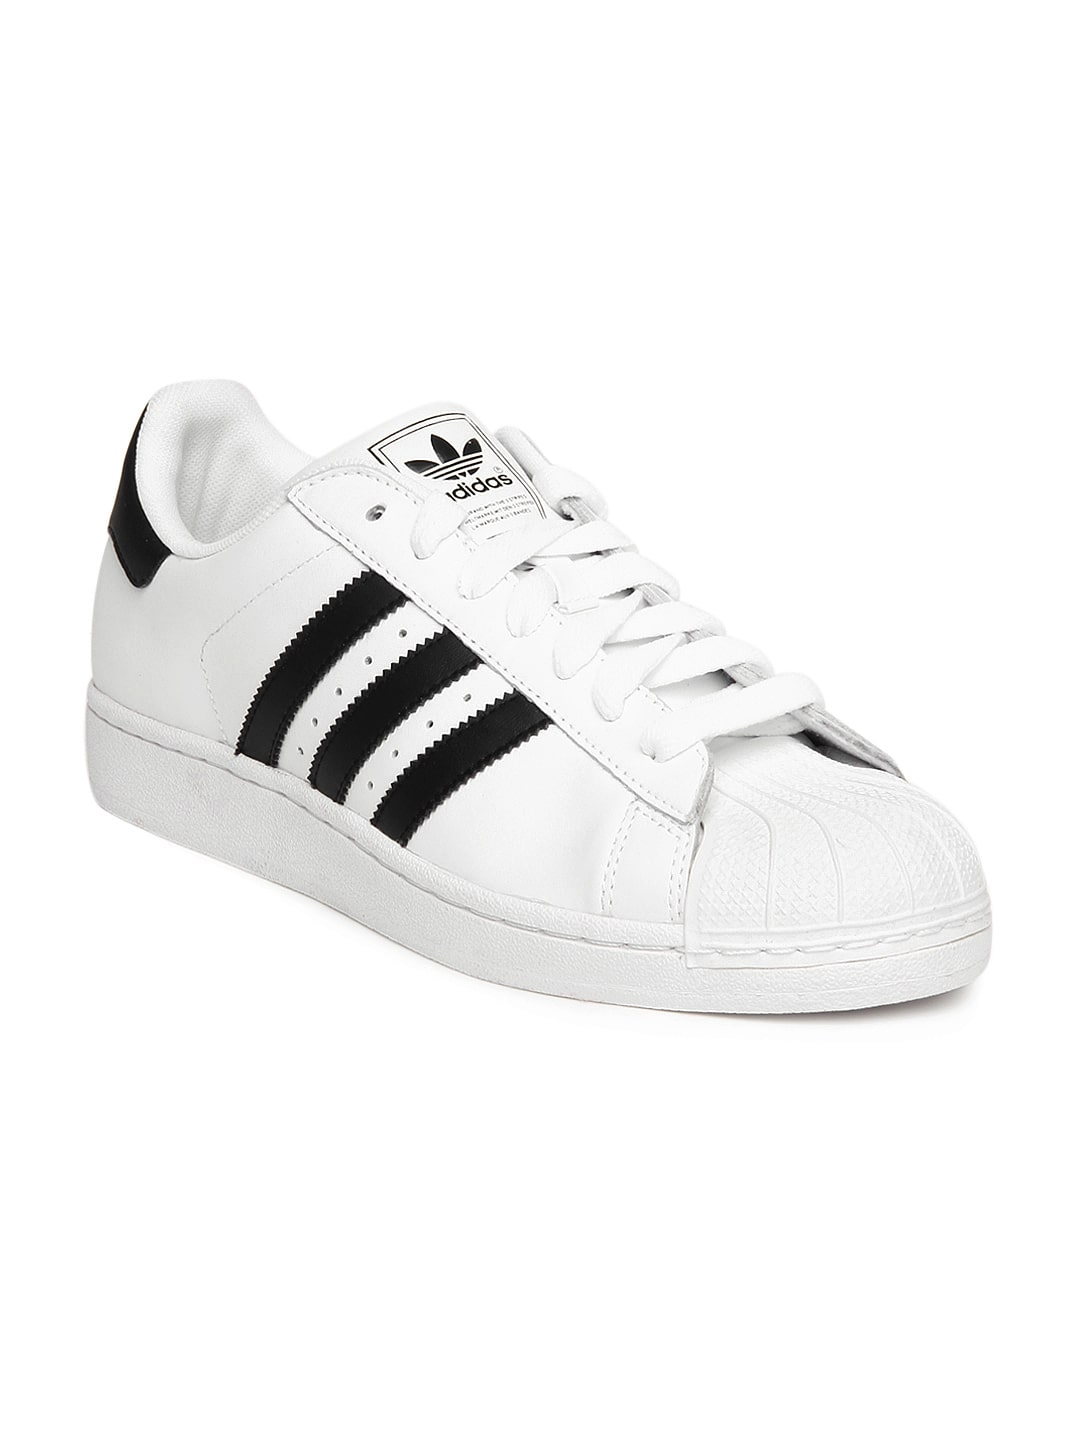 11cefcf803e6 Adidas g17068 Originals Men White Superstar Ii Casual Shoes- Price in India